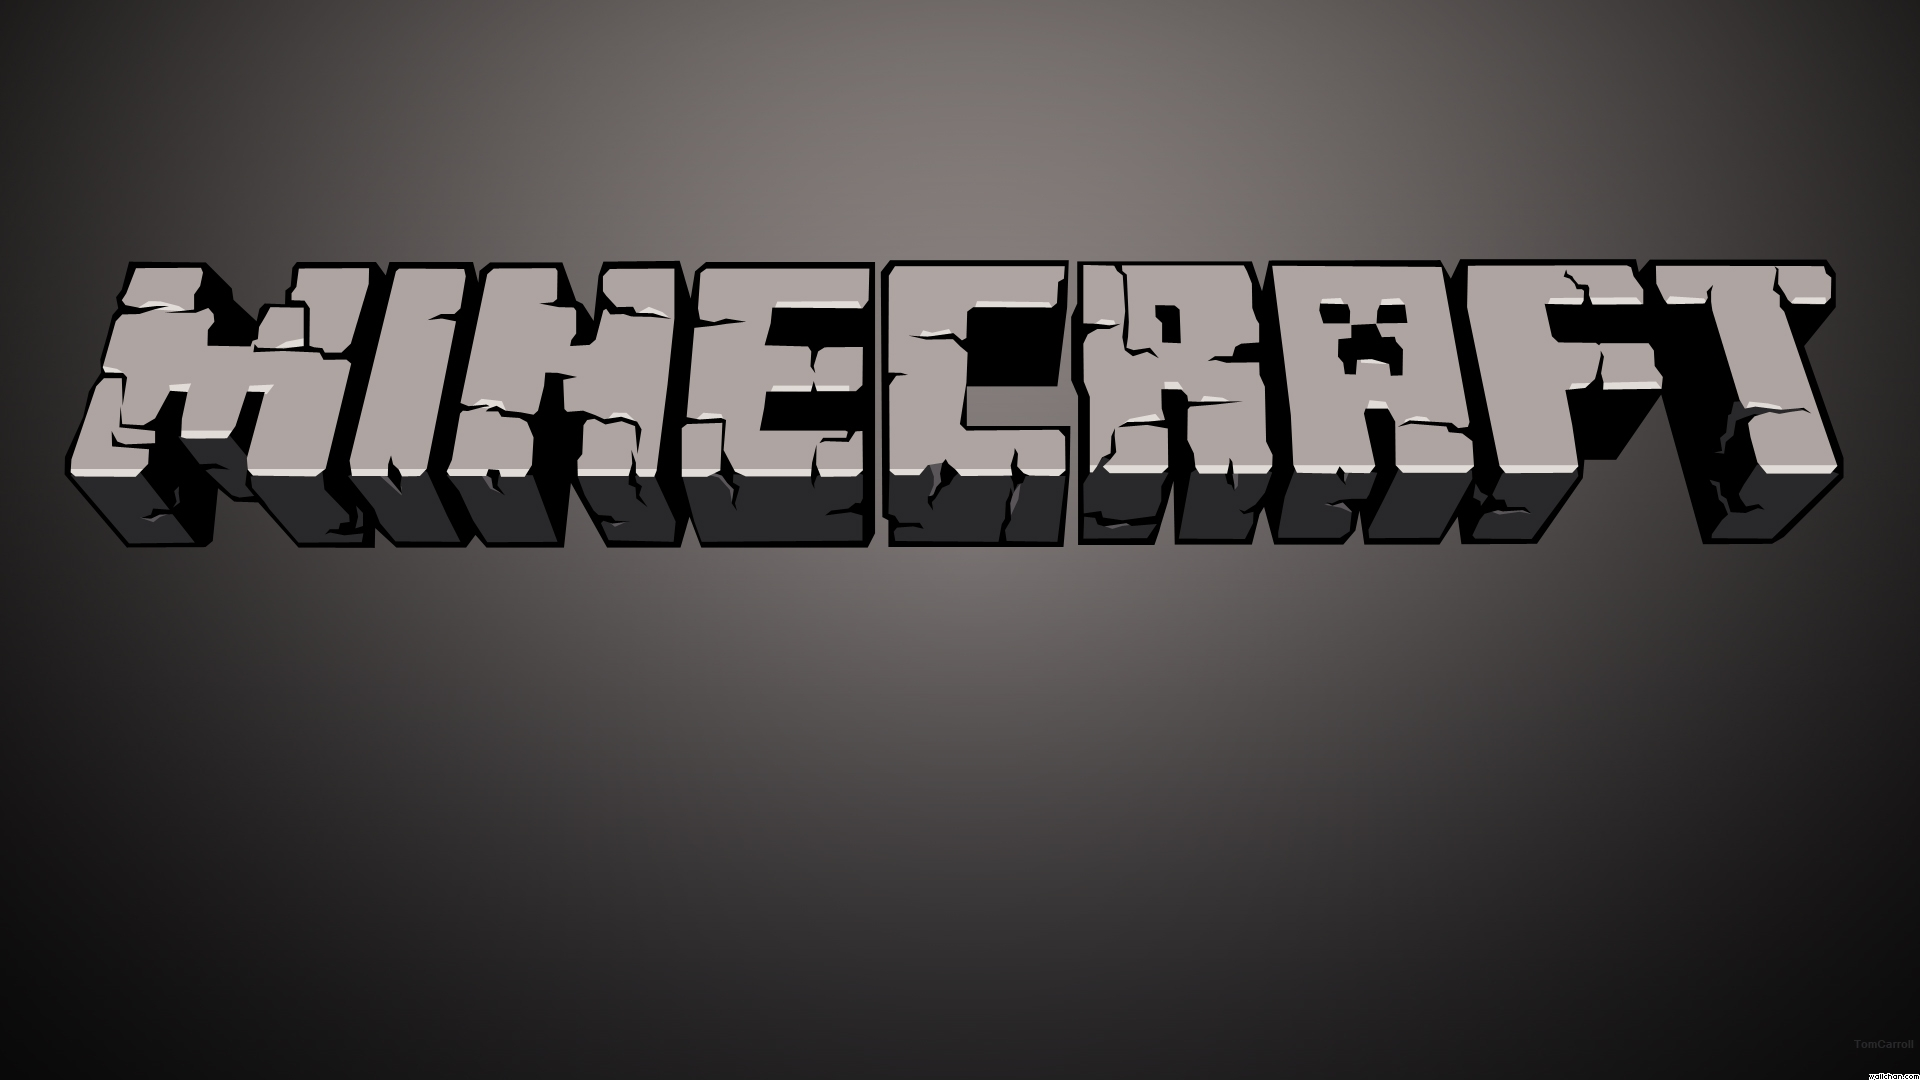 Minecraft Title Wallpaper